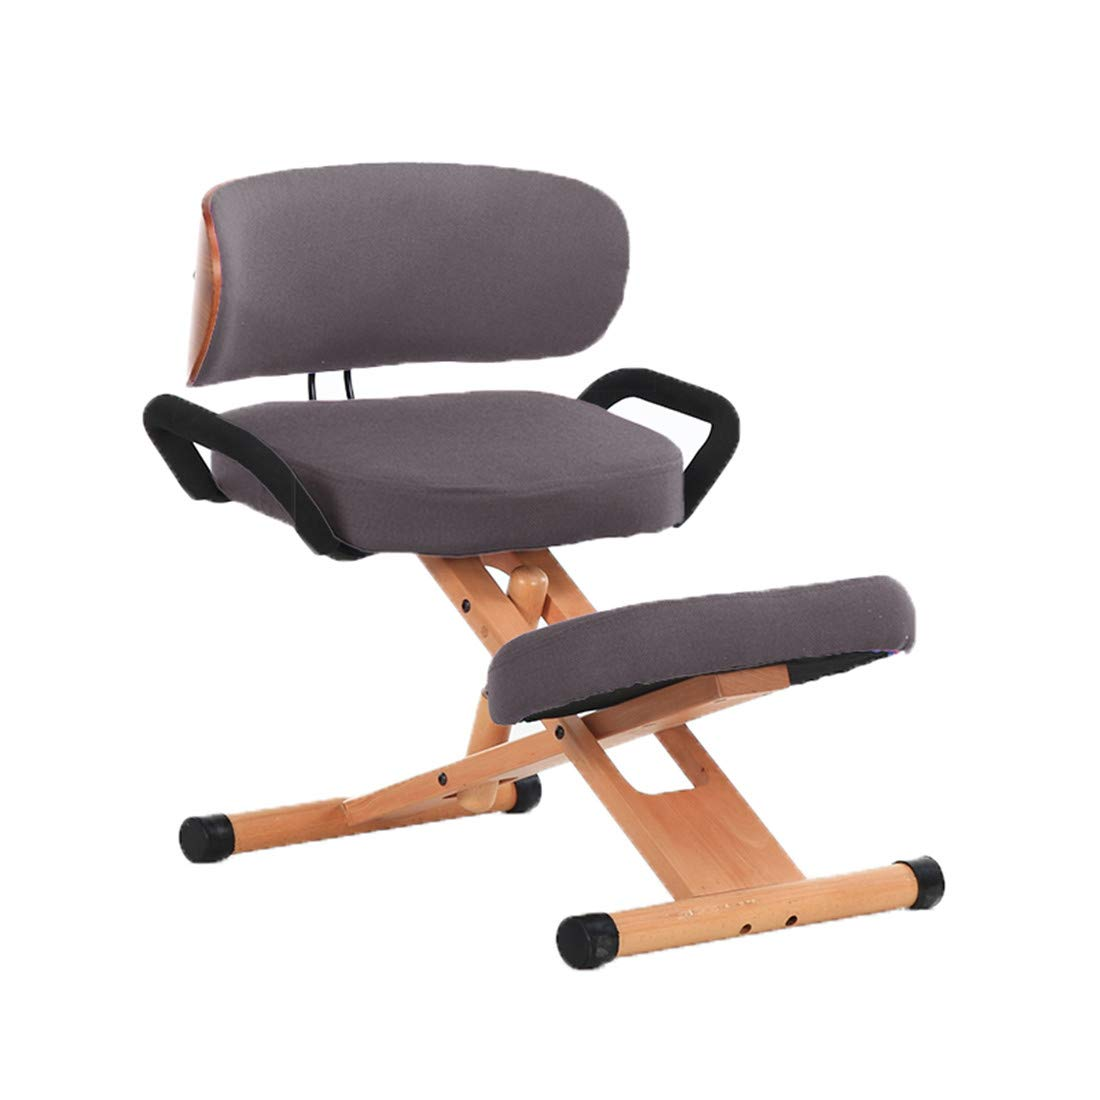 Wood Kneeling Chairs Balancing Body Office Orthopedic Stool with Handle Cushions Adjustable Ergonomic Relieving Back Orthopedic and Neck Pain by Kneeling Chairs JM